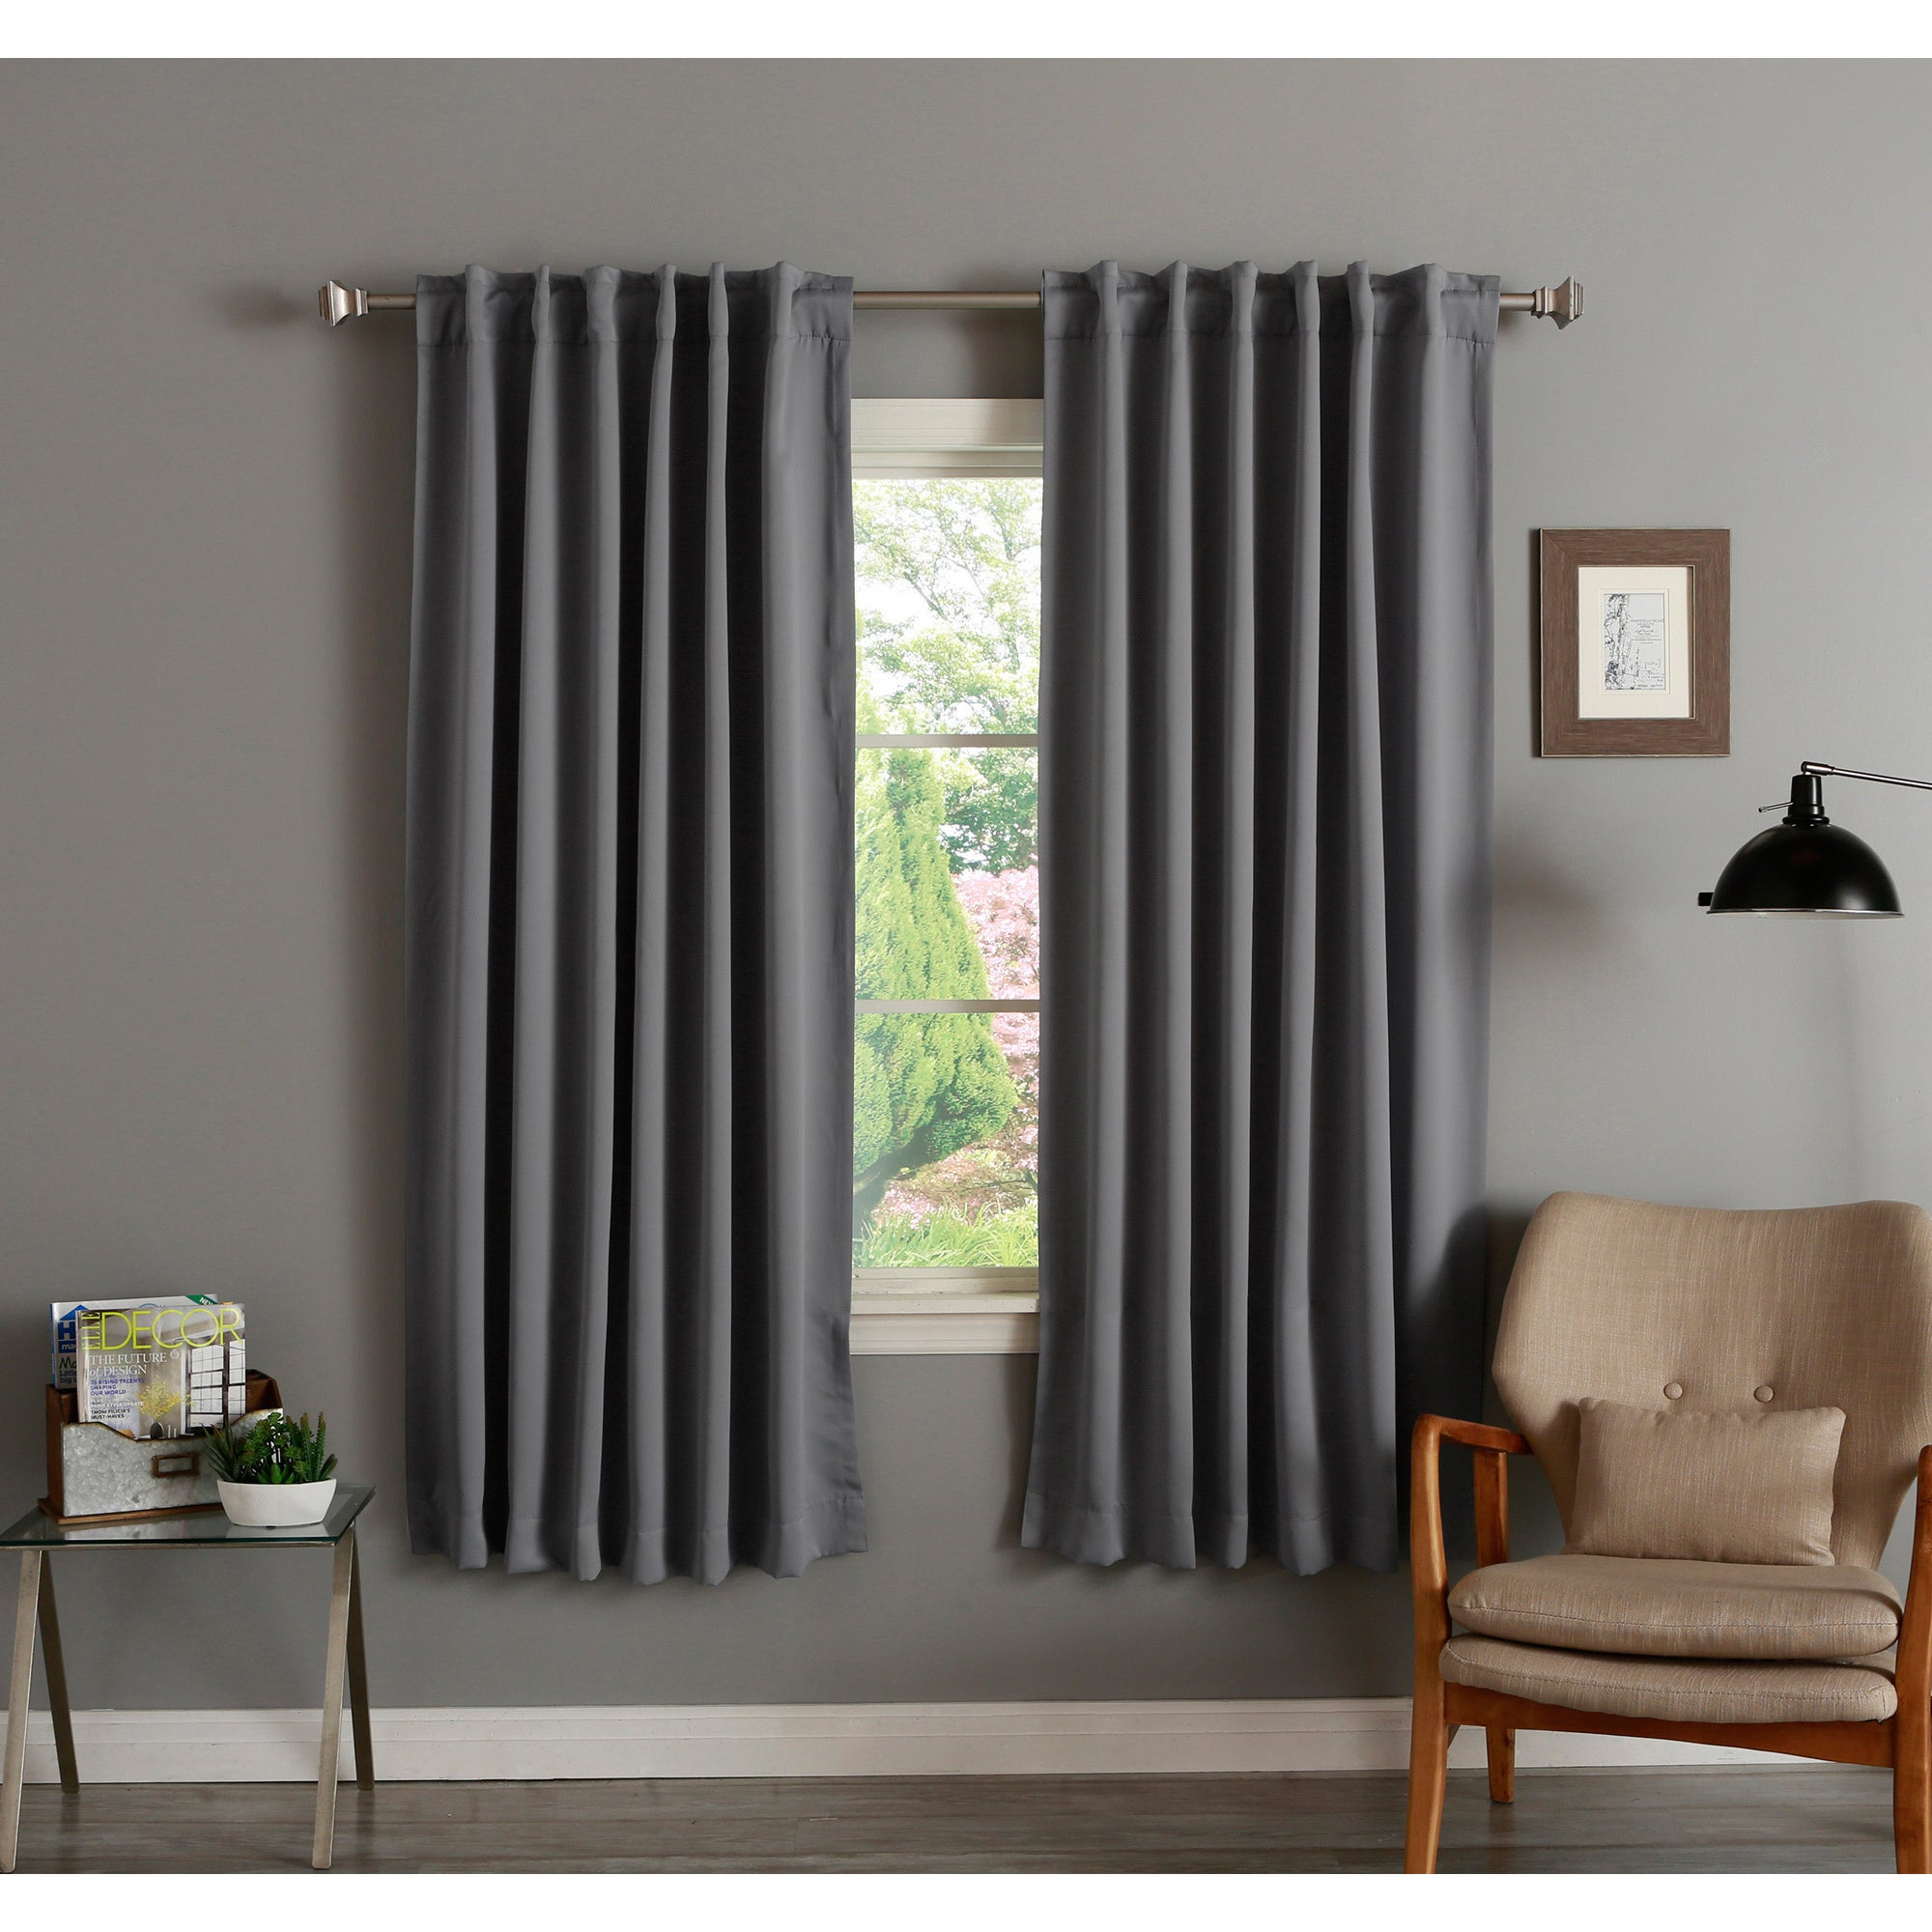 Aurora Home Insulated 72 Inch Thermal Blackout Curtain Panel Pair – 52 X 72 Within Insulated Thermal Blackout Curtain Panel Pairs (View 4 of 20)